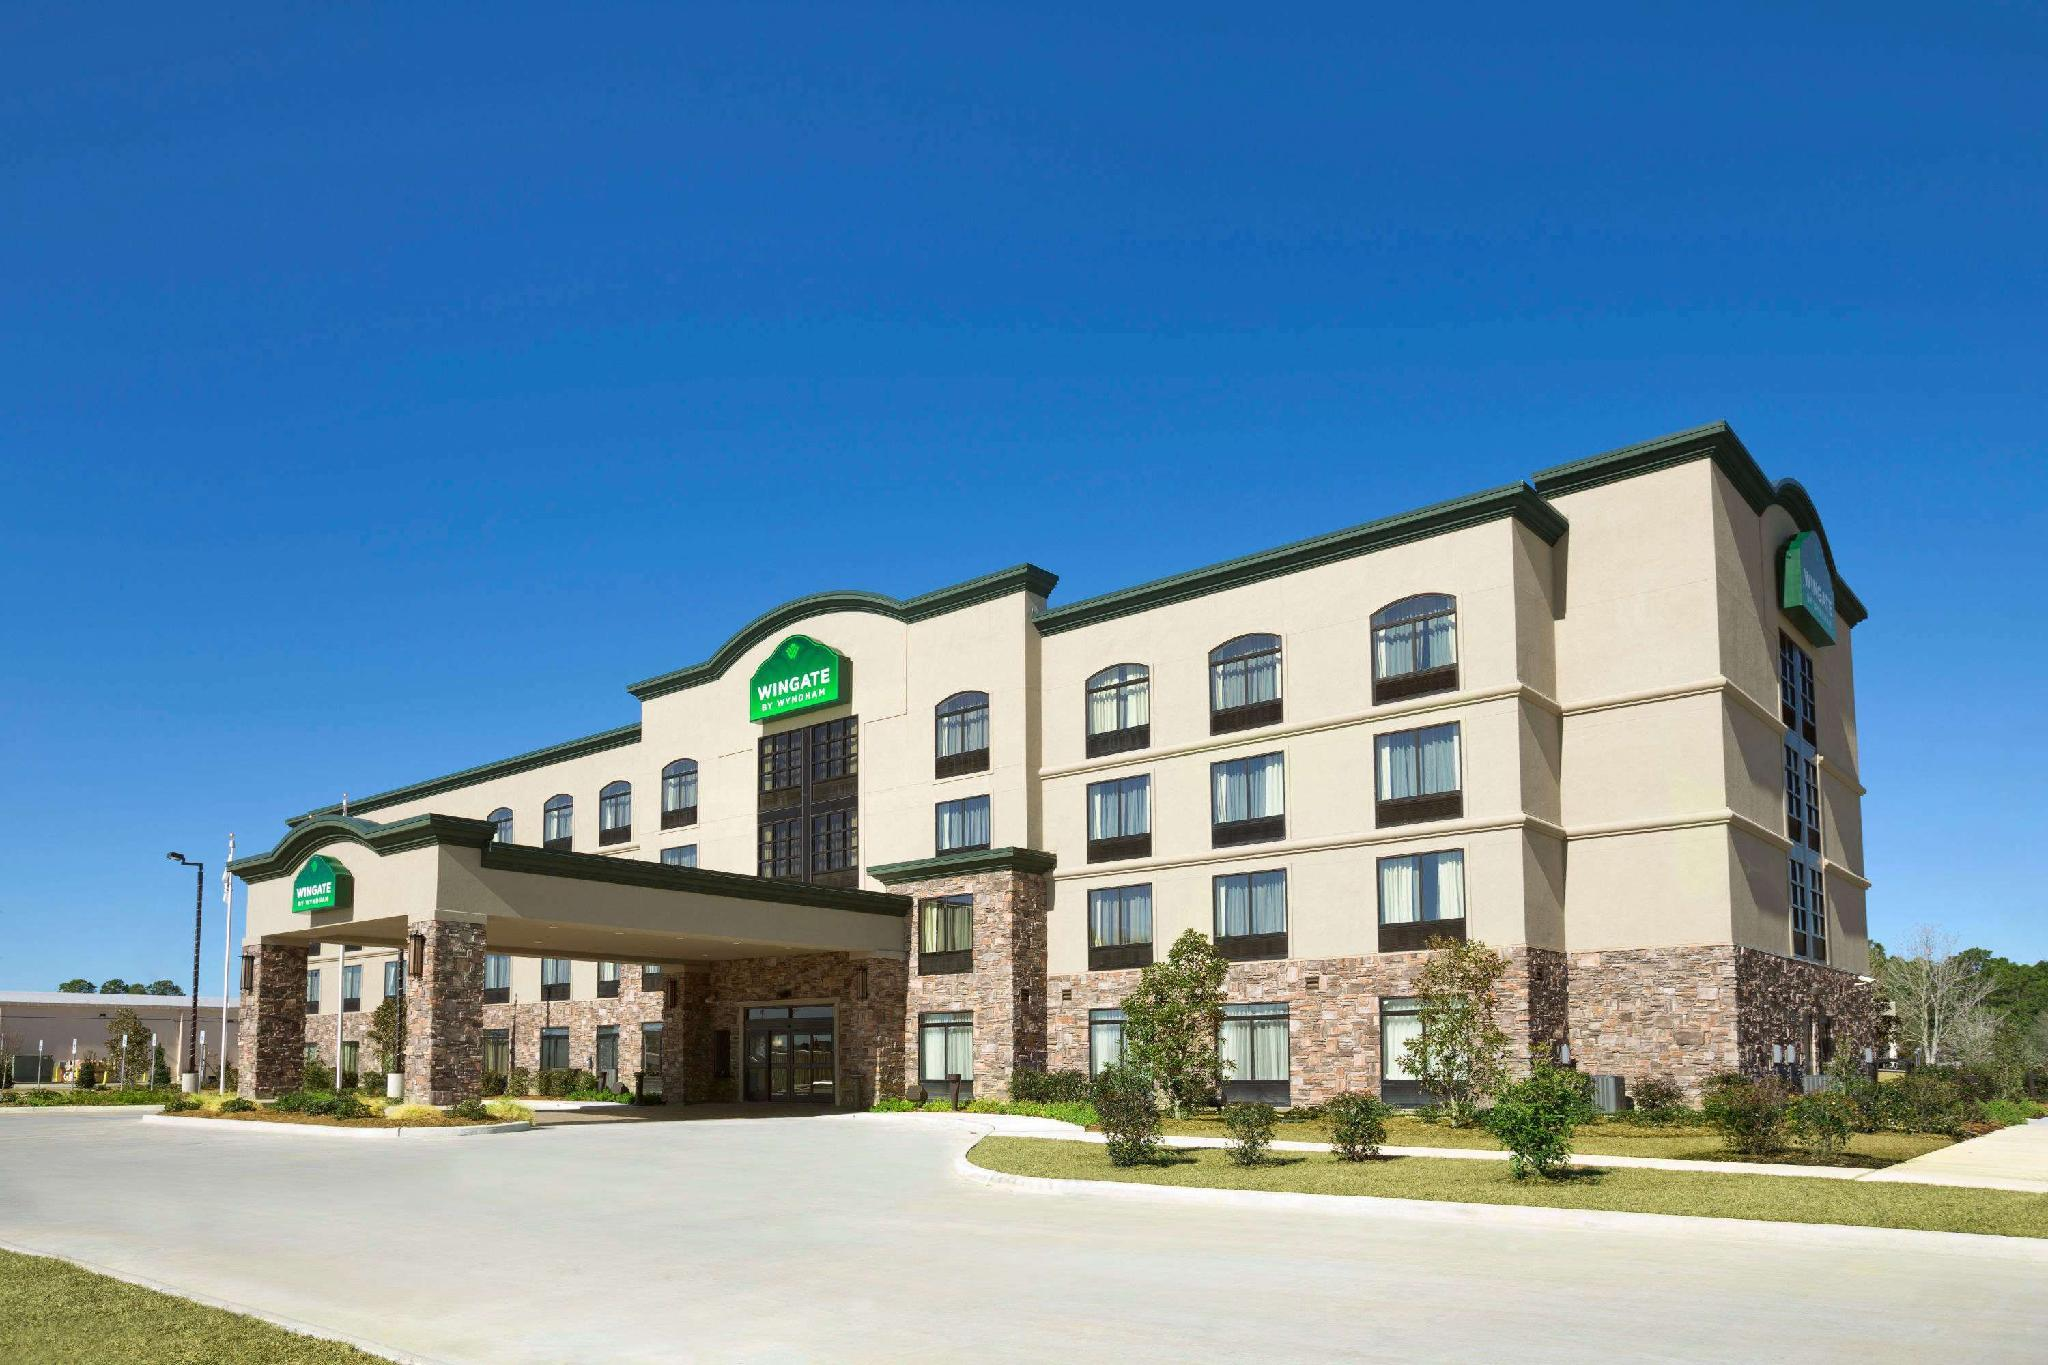 Wingate By Wyndham Slidell New Orleans East Area